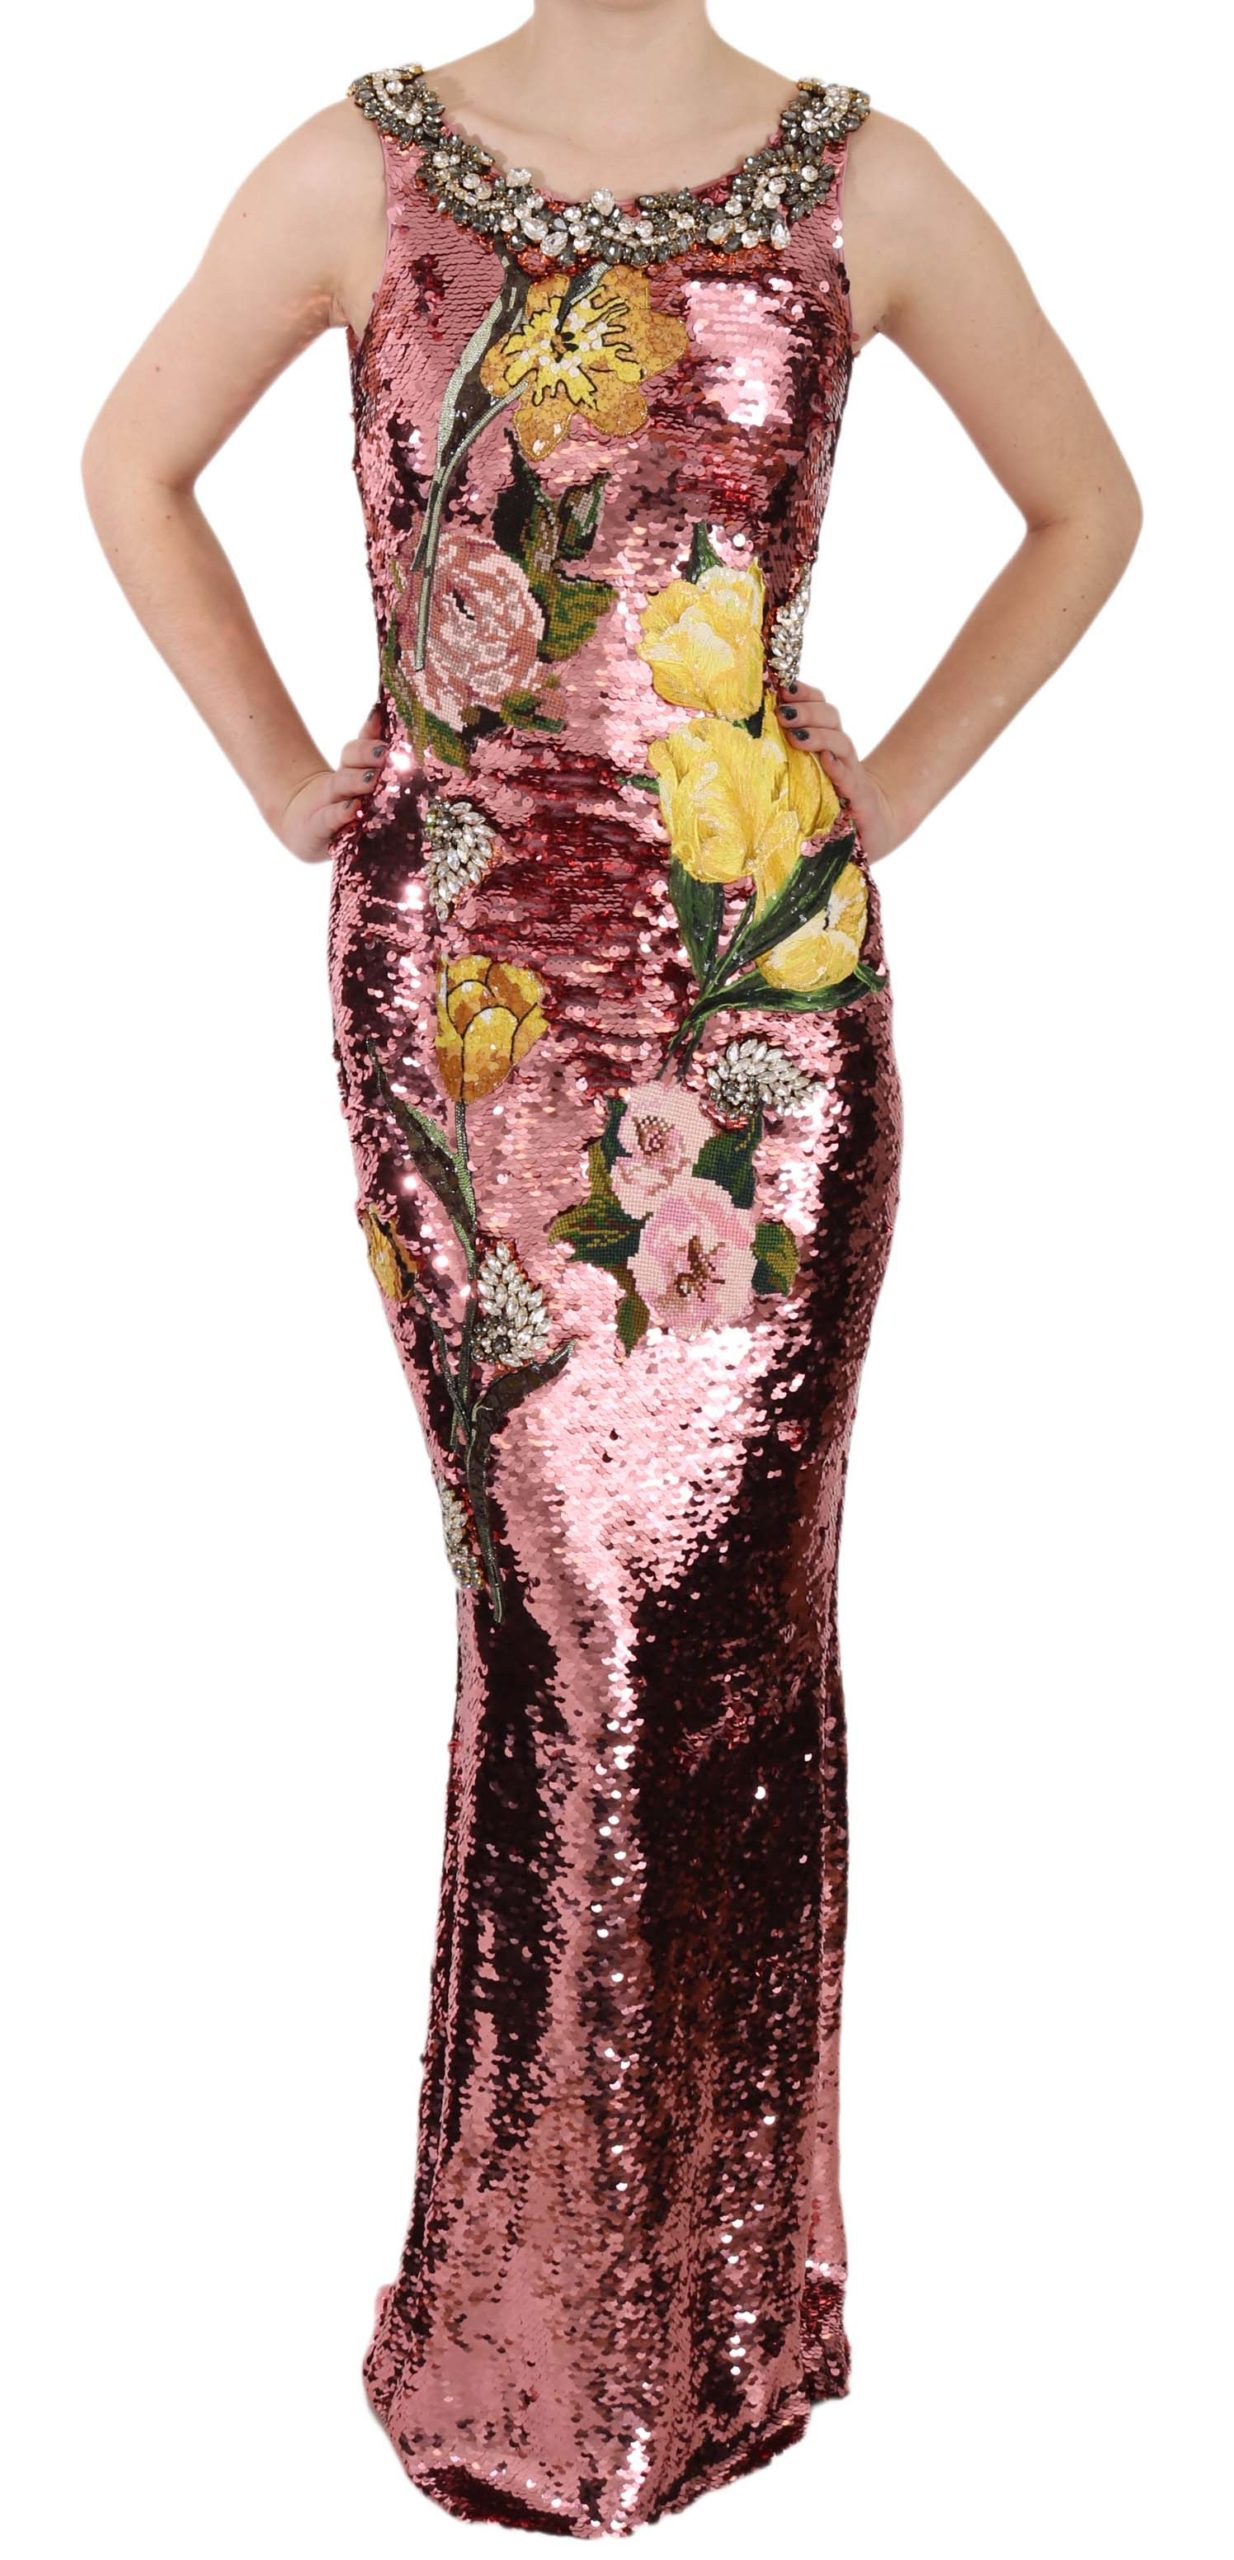 Dolce & Gabbana Women's Crystal Sequined Sheath Gown Dress Pink DR1677 - IT38 XS